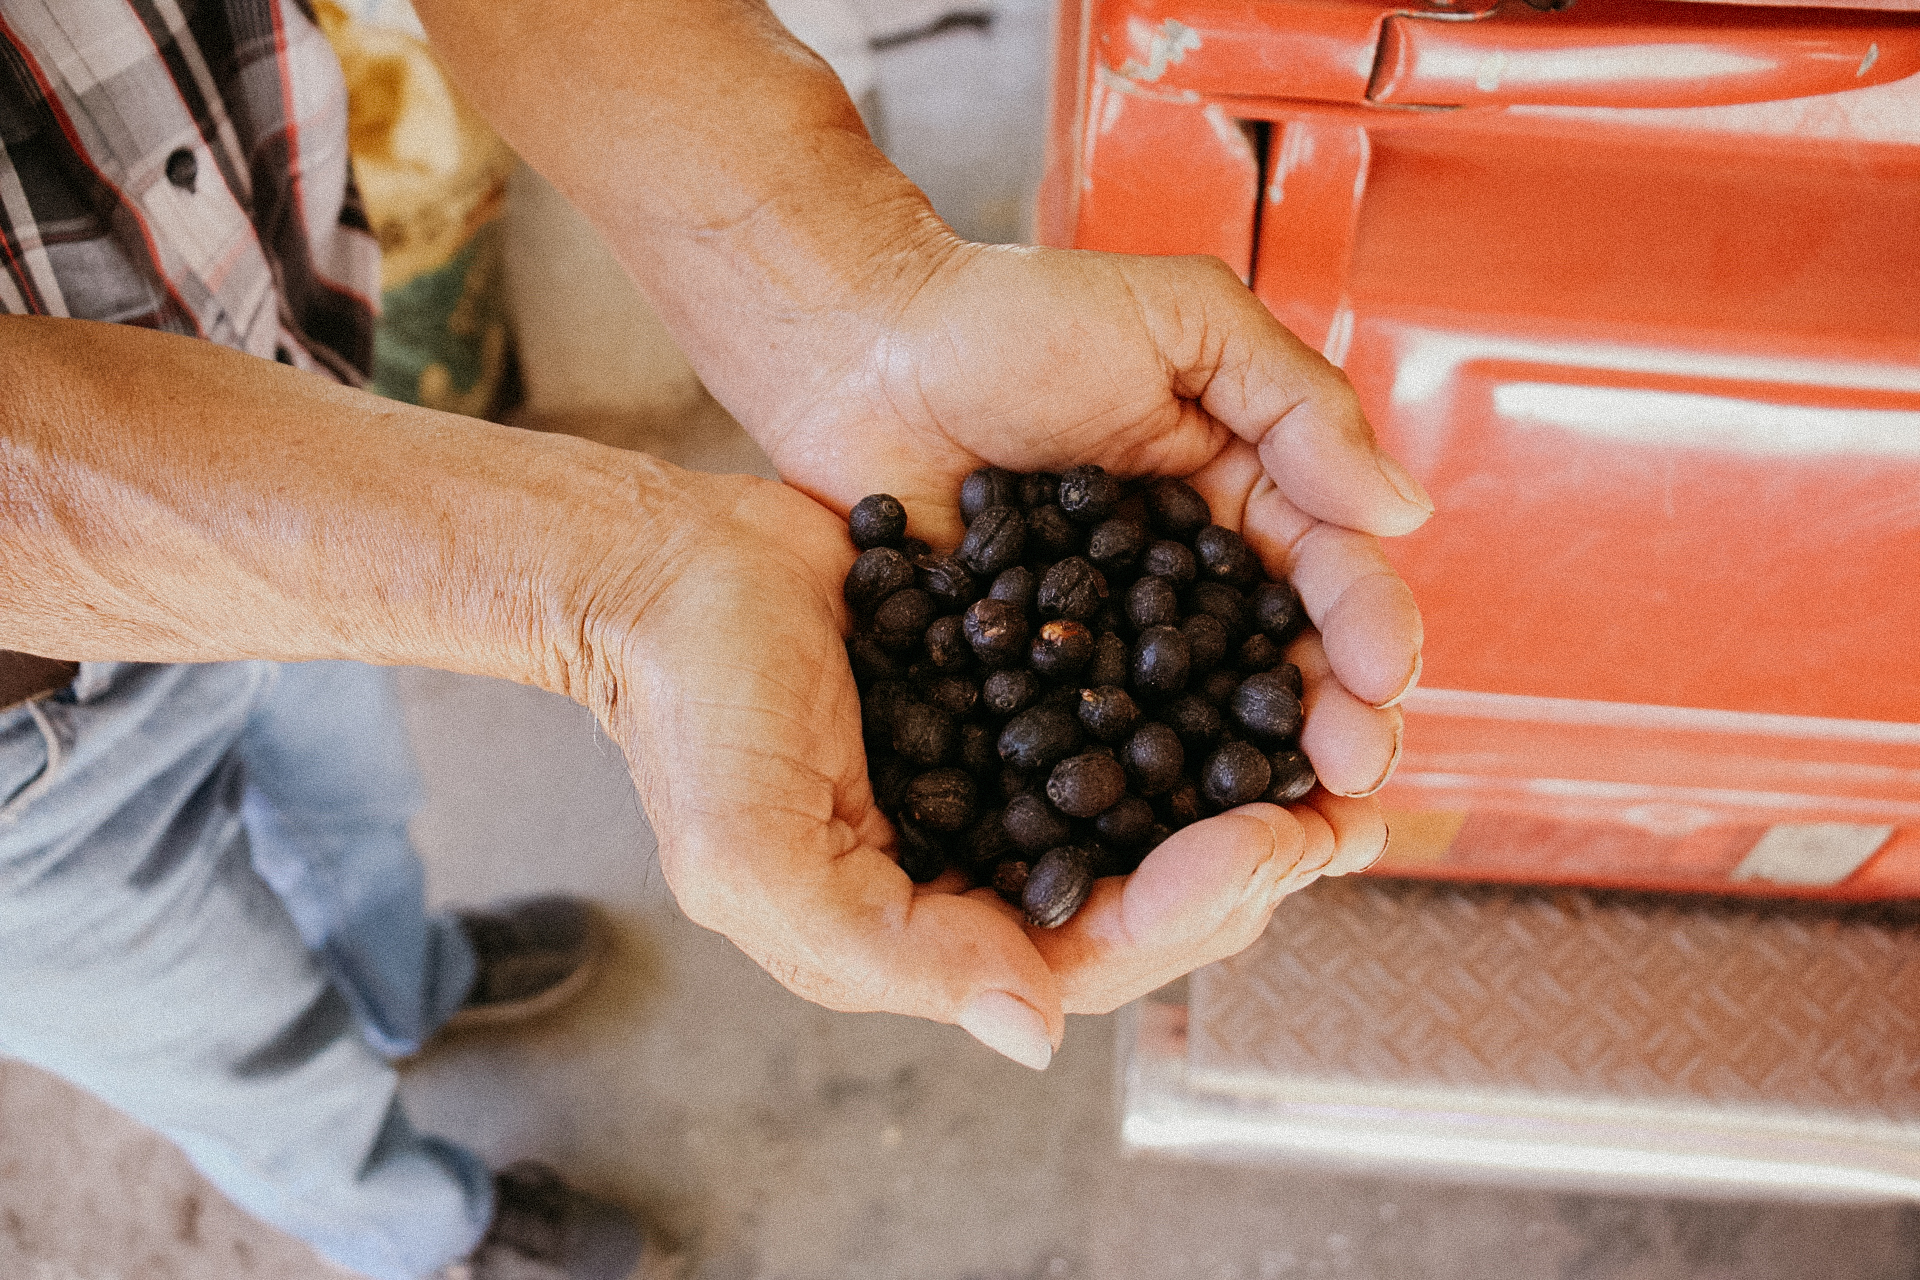 Natural coffees are a newer endeavor for the Villatoros who have traditionally only produced washed coffees.